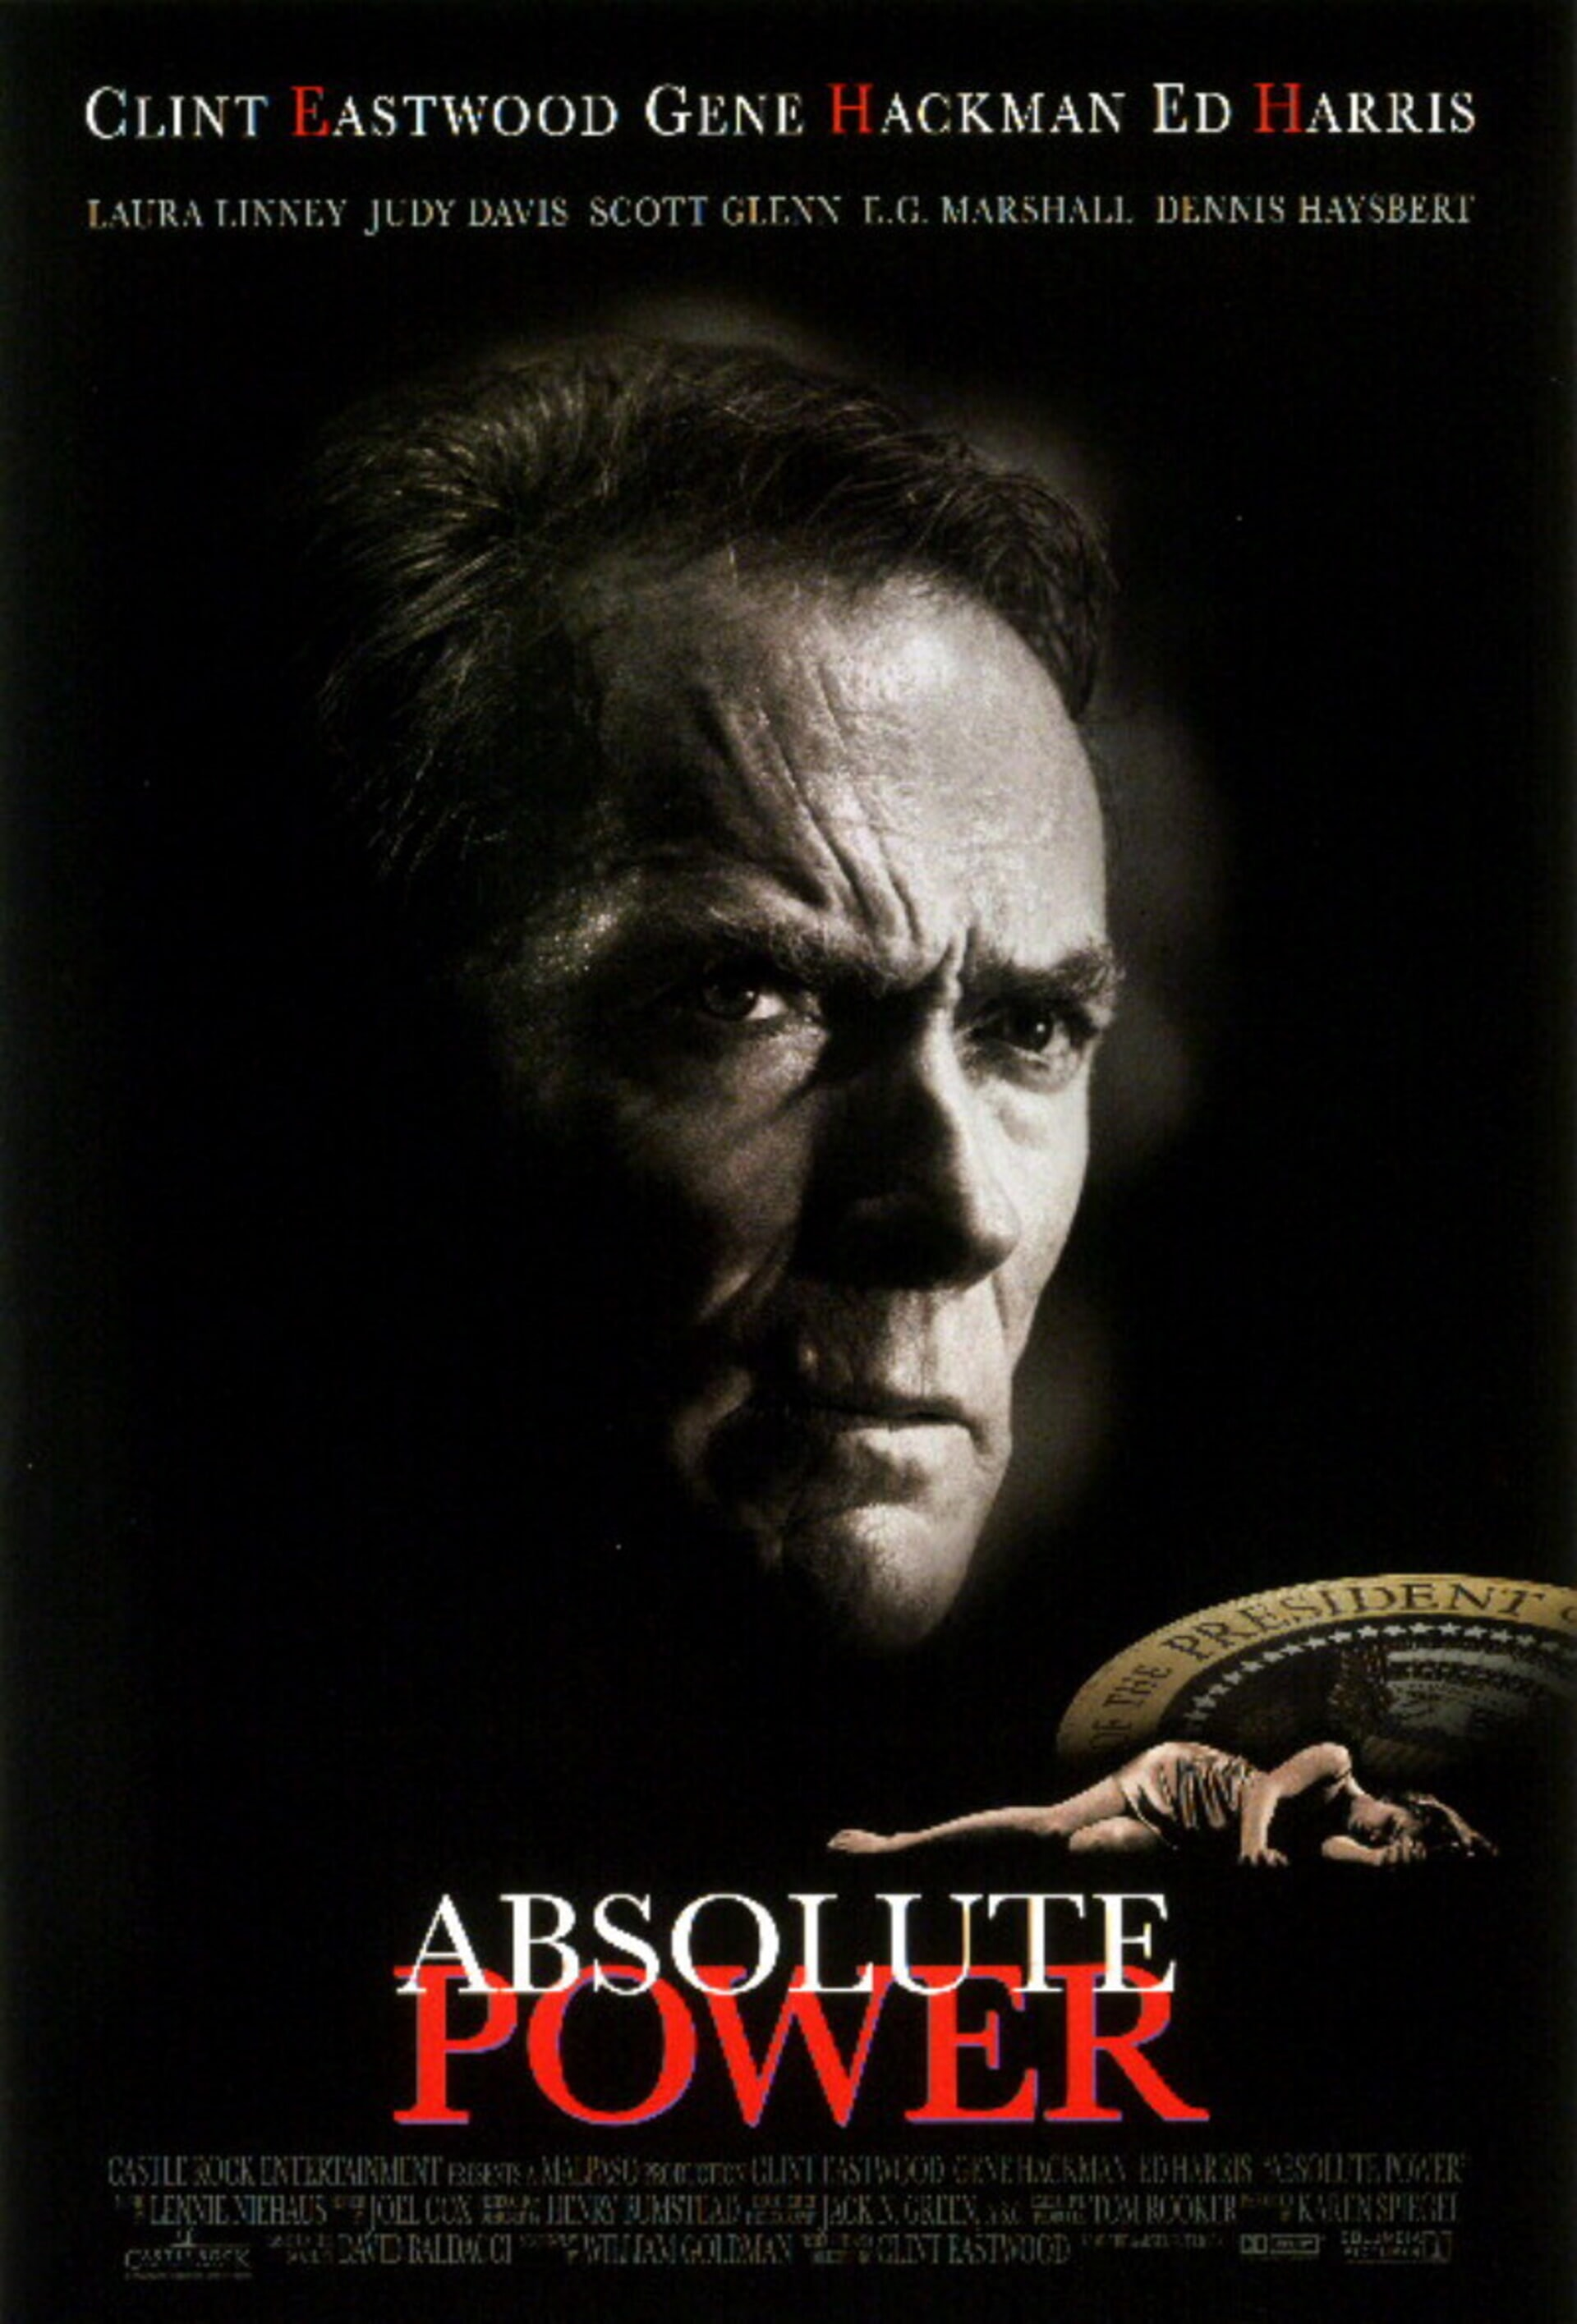 Absolute Power - Poster 1